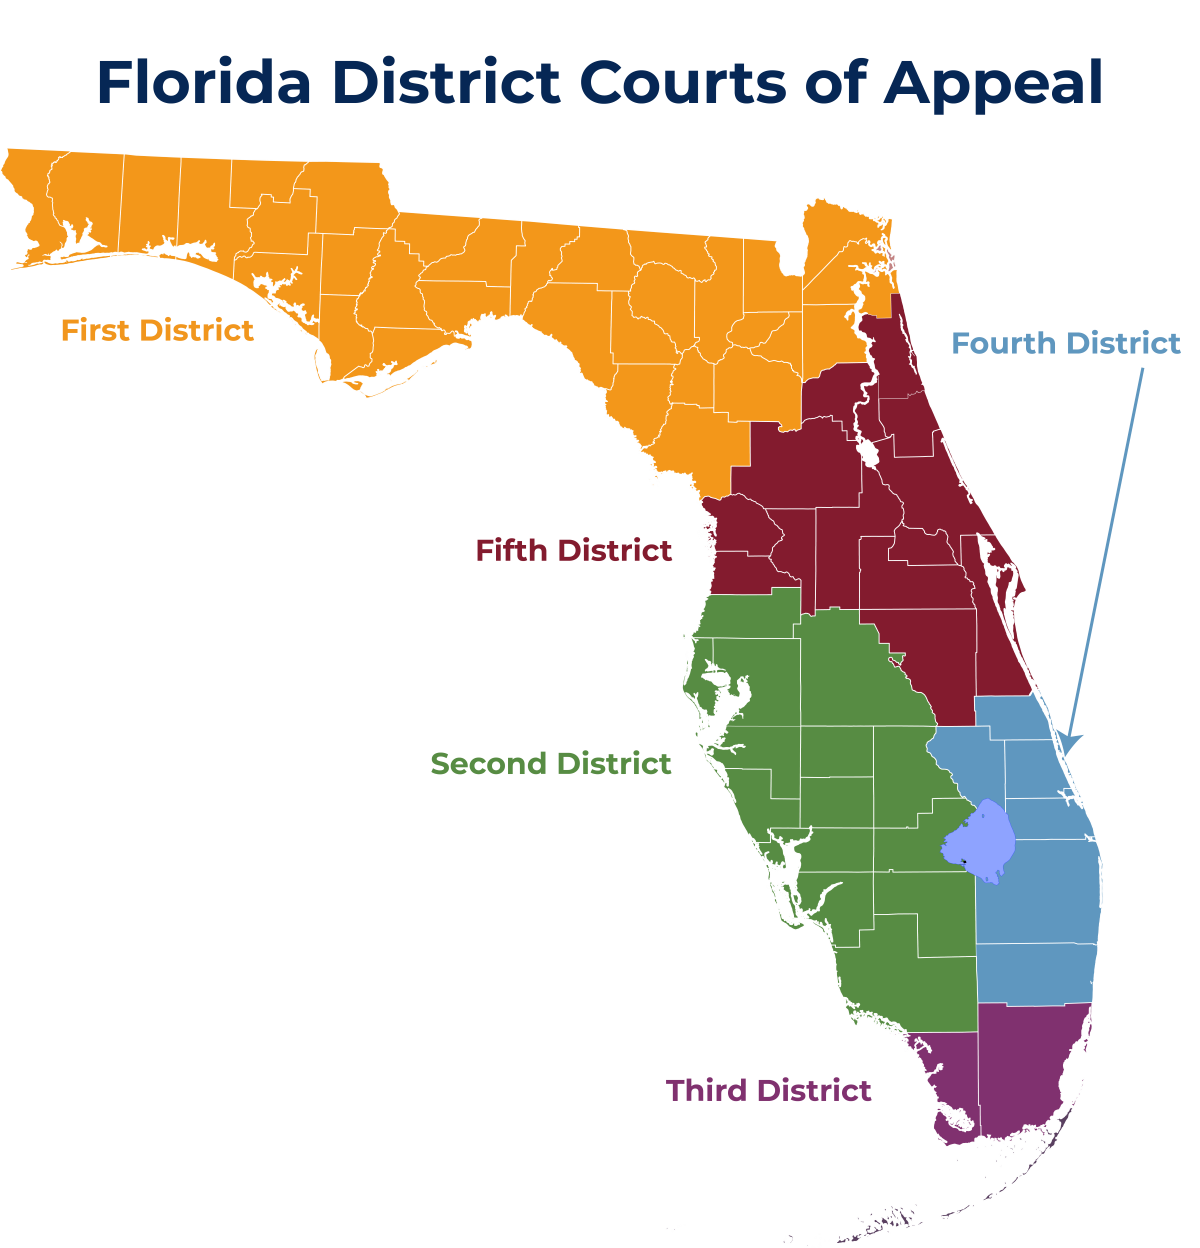 Full size map of Florida's DCAs